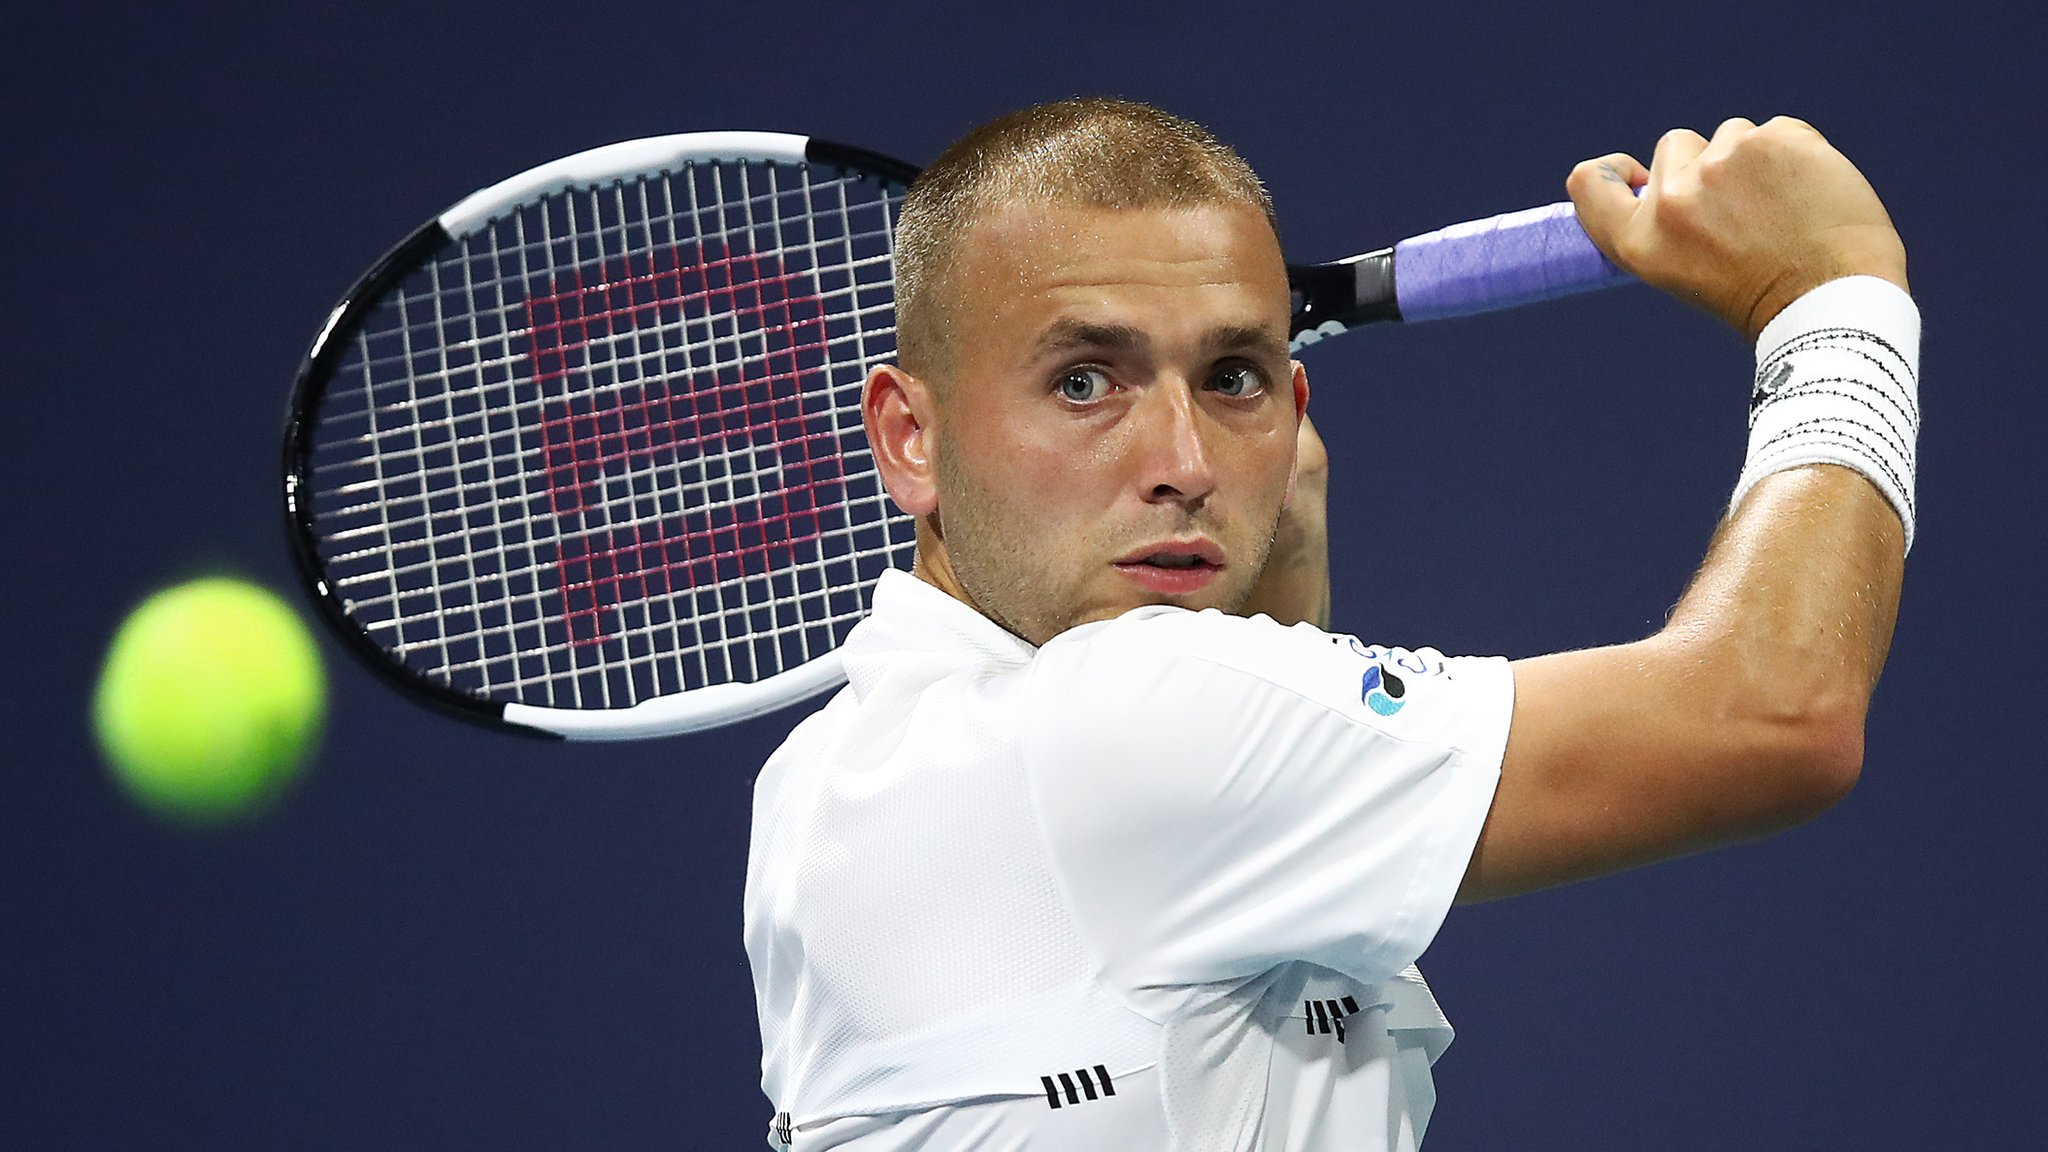 French Open: Dan Evans joins Kyle Edmund & Cameron Norrie in men's singles main draw